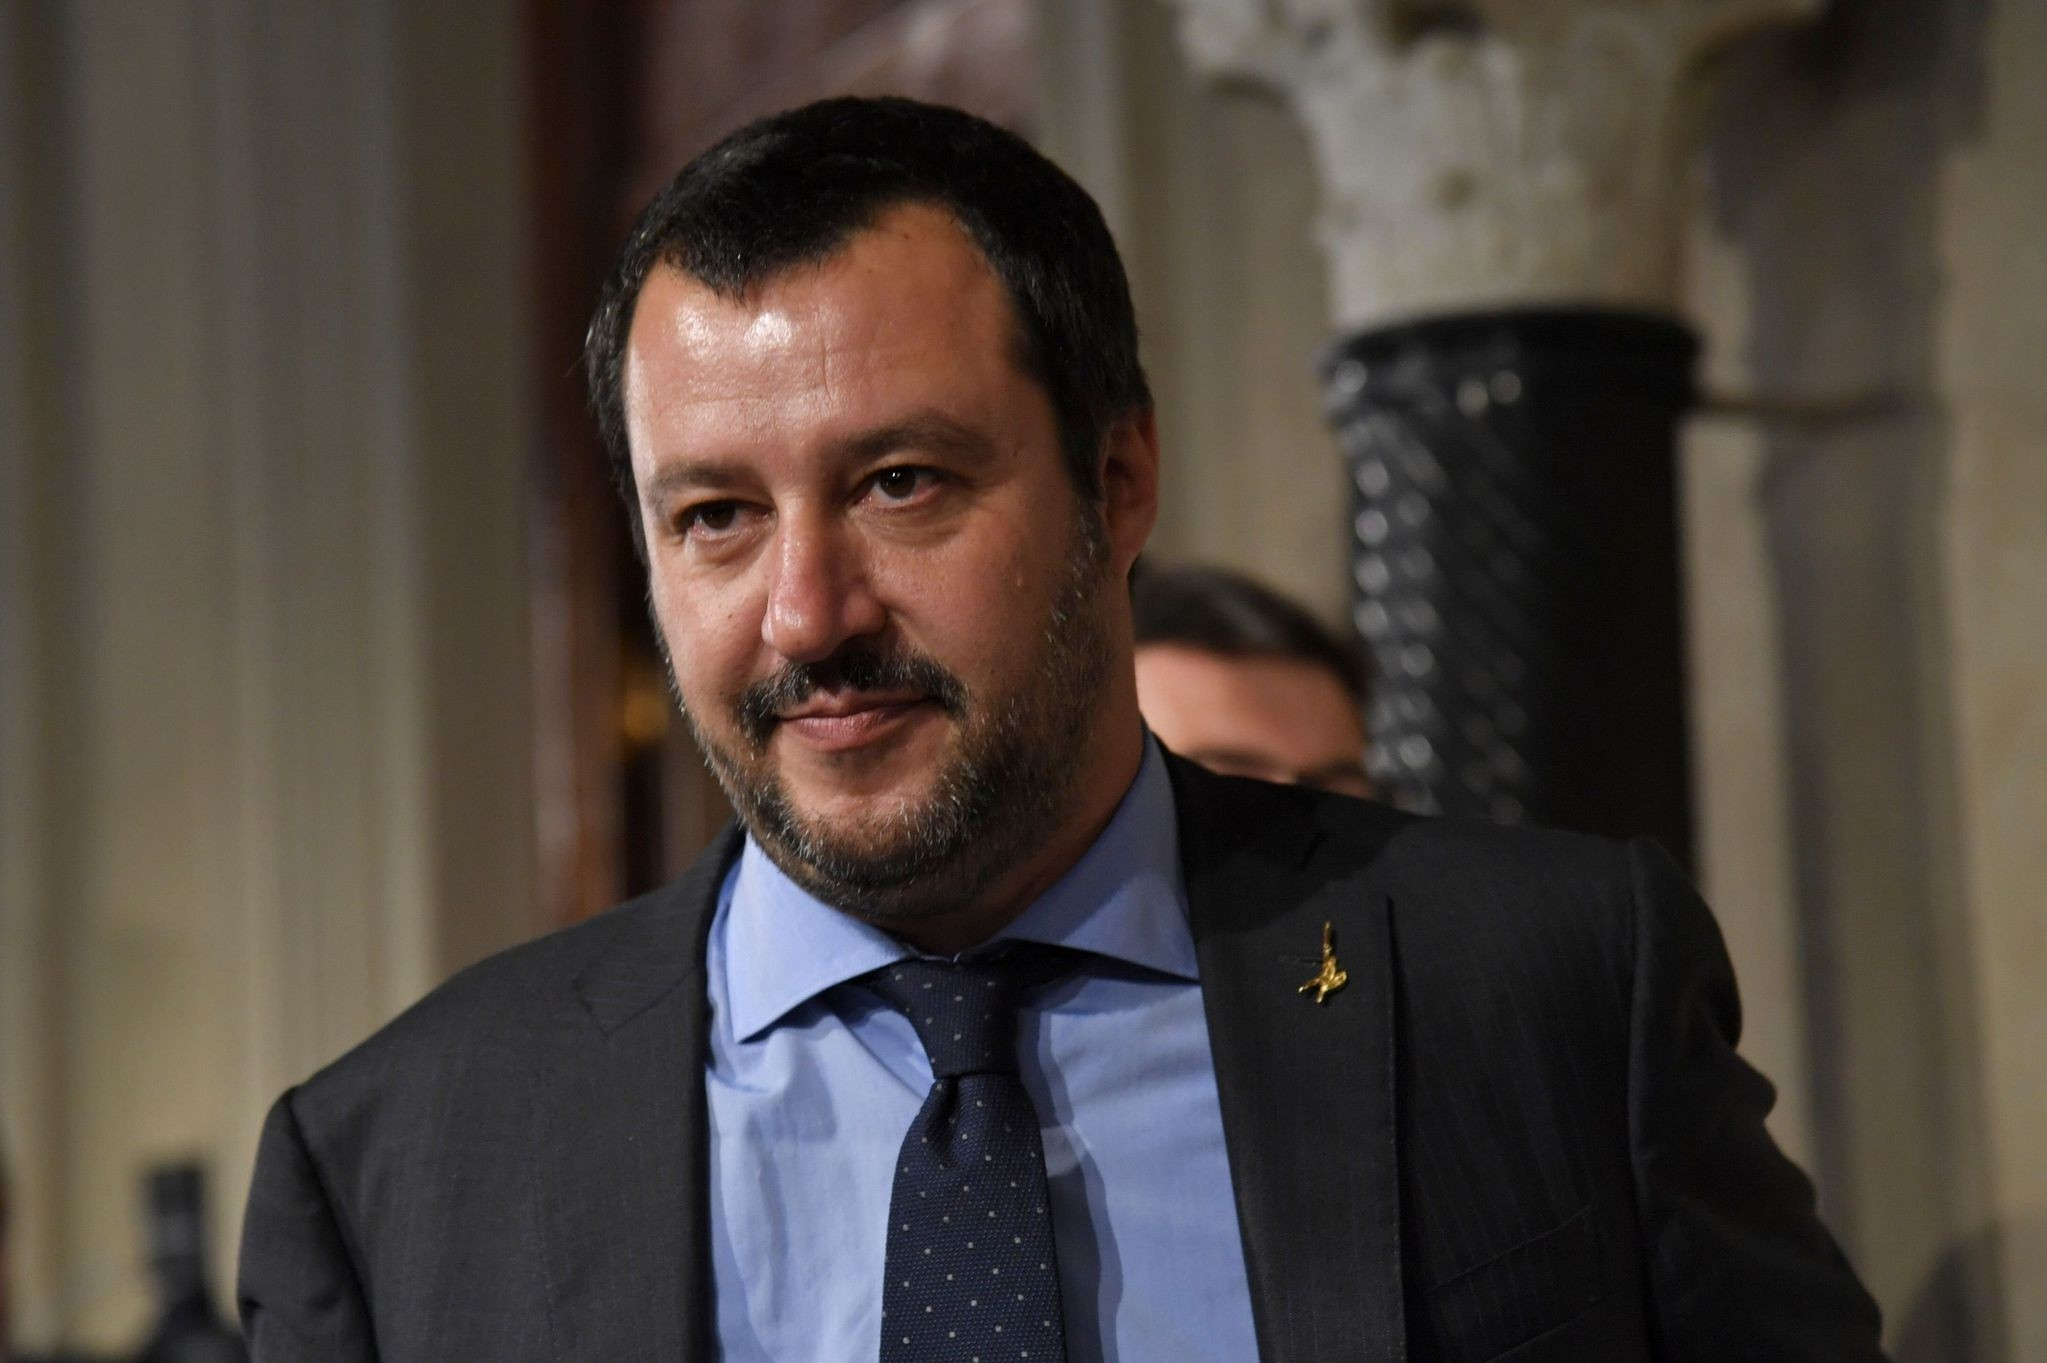 Matteo Salvini, leader of the far-right party ,Lega, (League) speaks to the press at the Quirinale palace, Rome,  May 14.